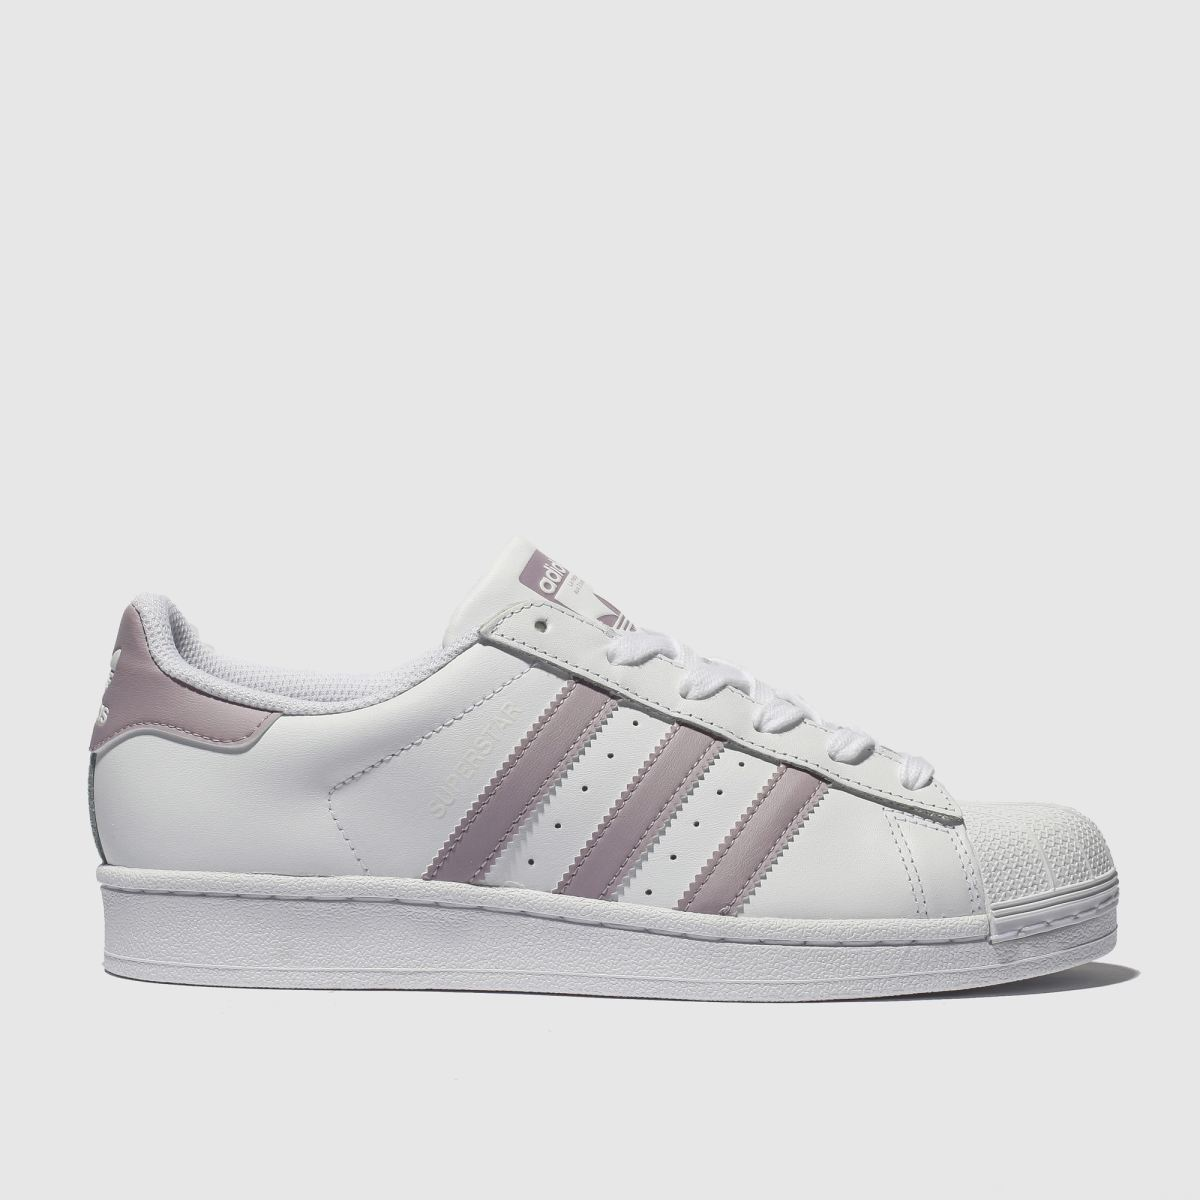 Adidas White & Pink Superstar Trainers